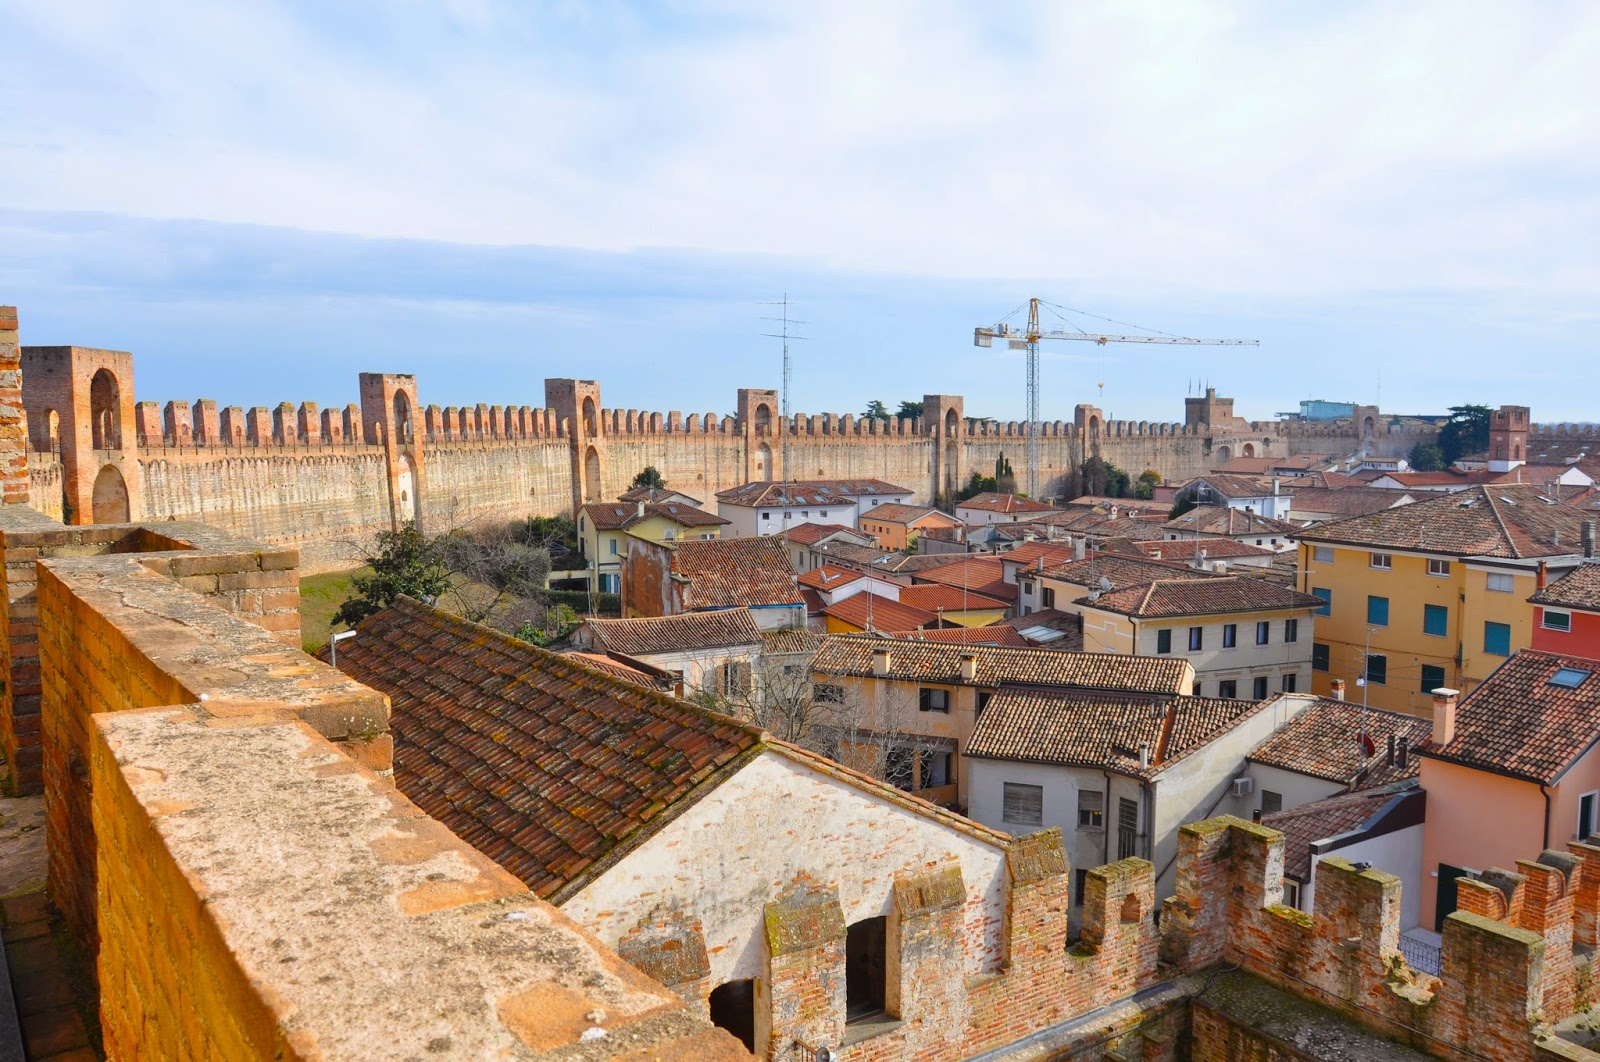 The medieval wall of the town of Cittadella in Italy with a crane in the distance